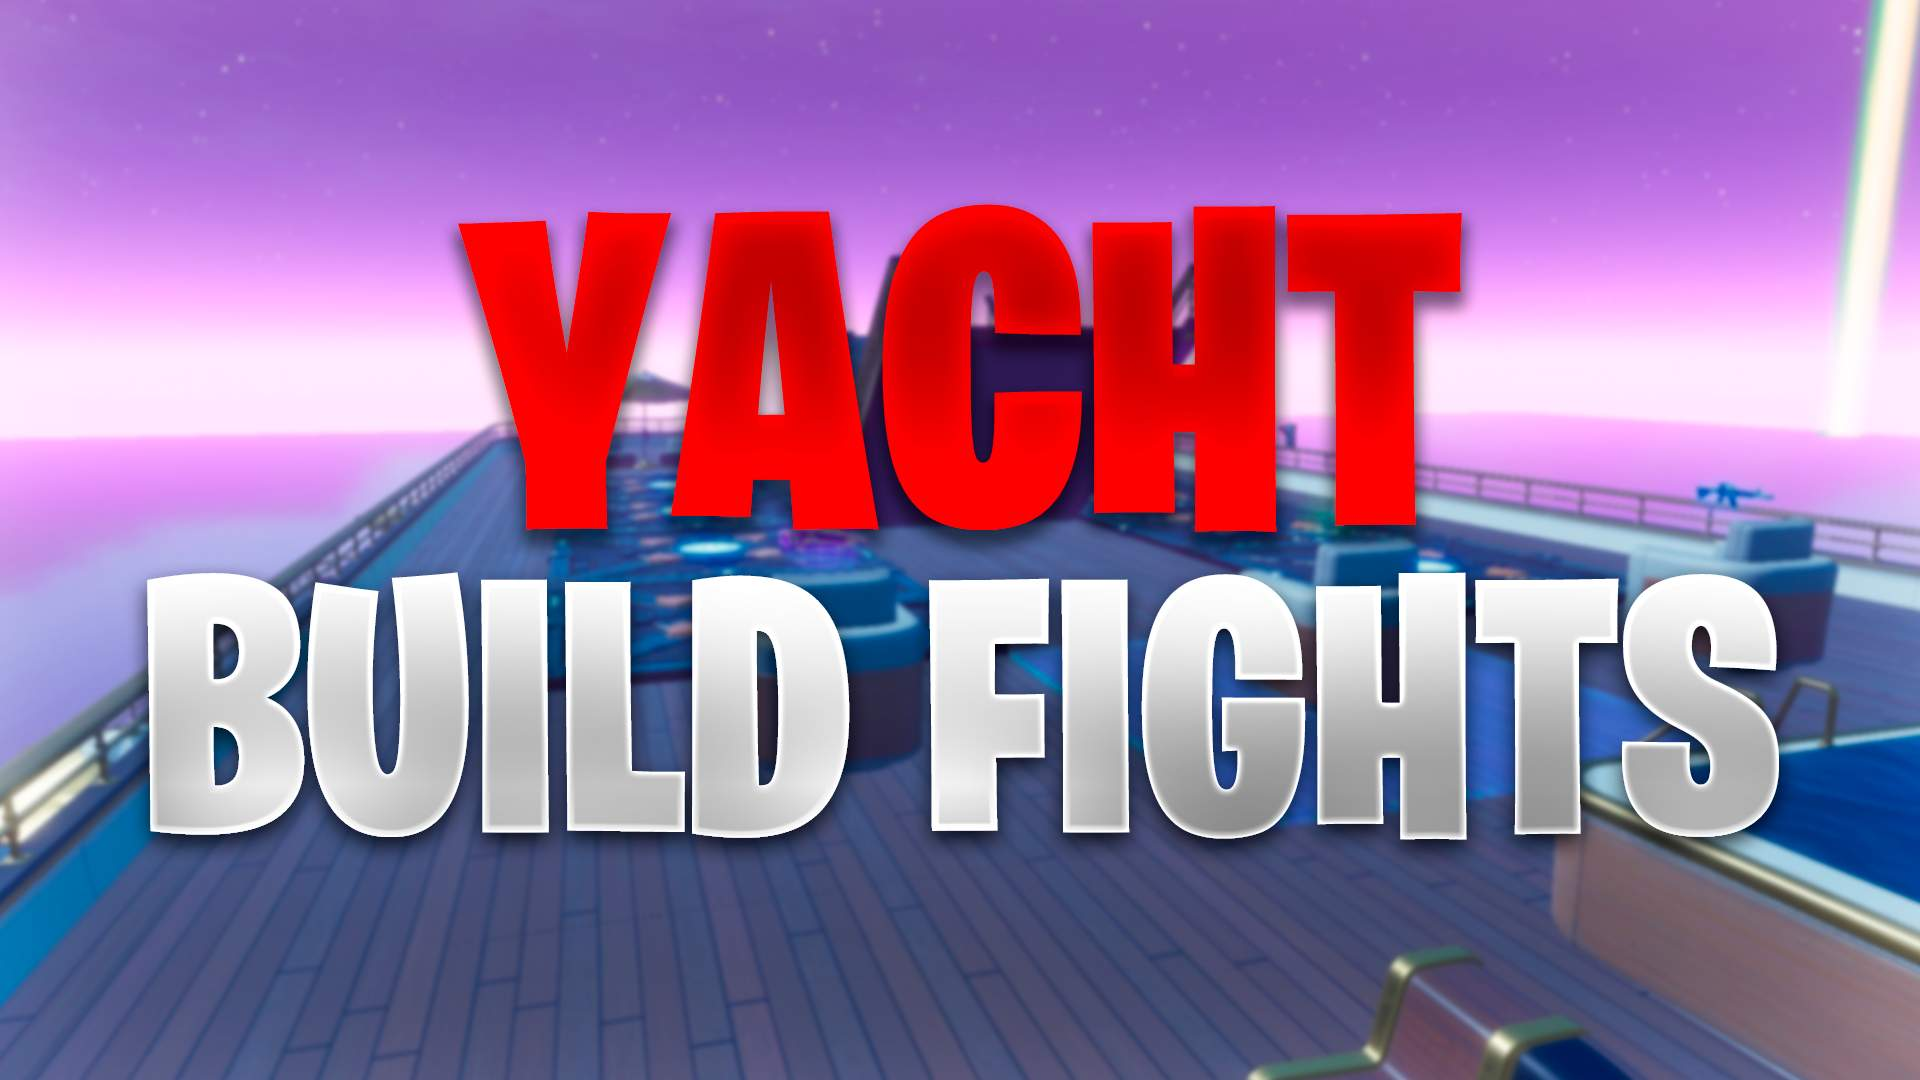 YACHT BUILDFIGHTS